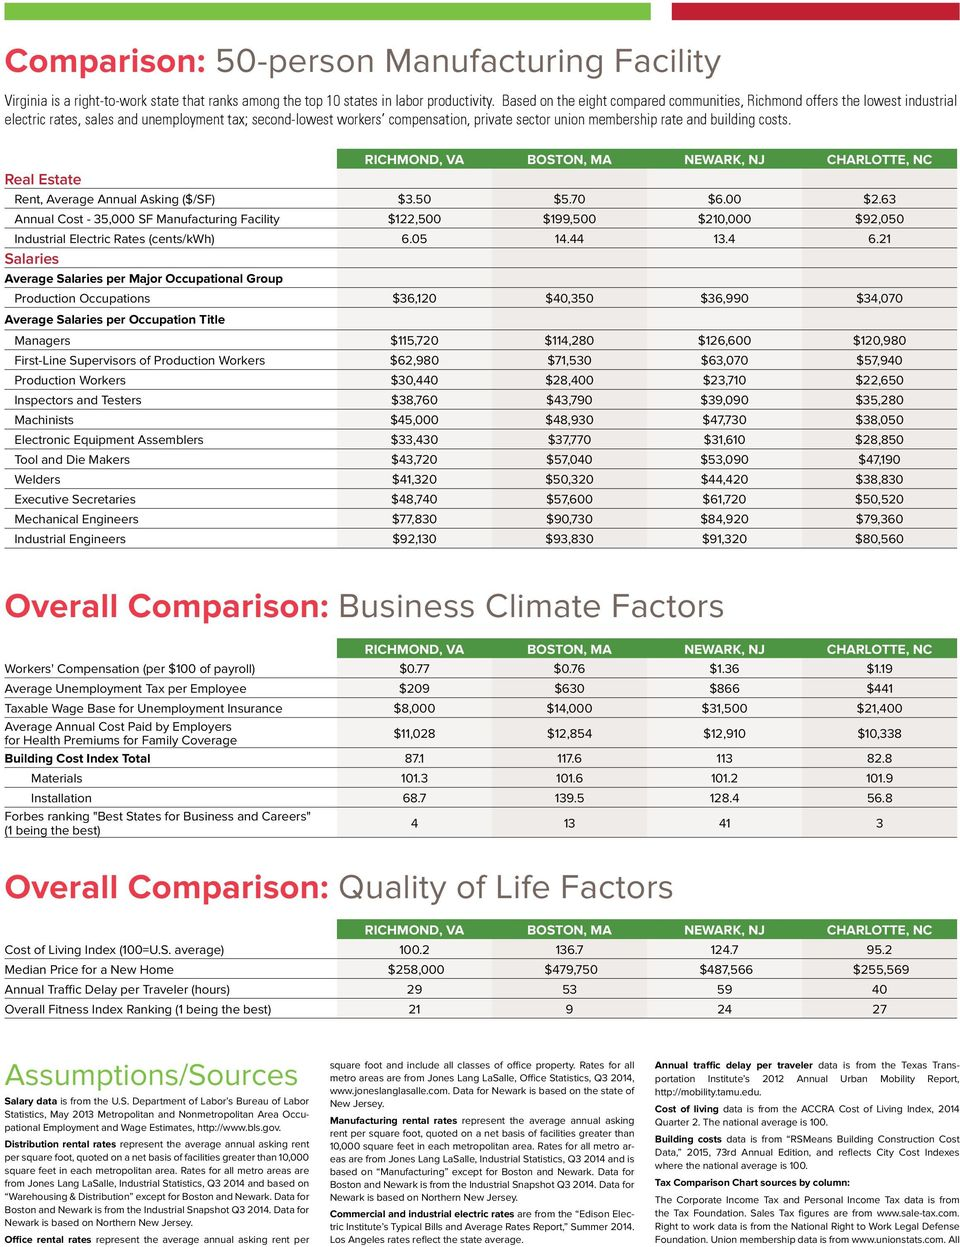 building costs. ichmond, VA Boston, Ma newark, nj charlotte, nc eal Estate ent, Average Annual Asking ($/SF) $3.50 $5.70 $6.00 $2.